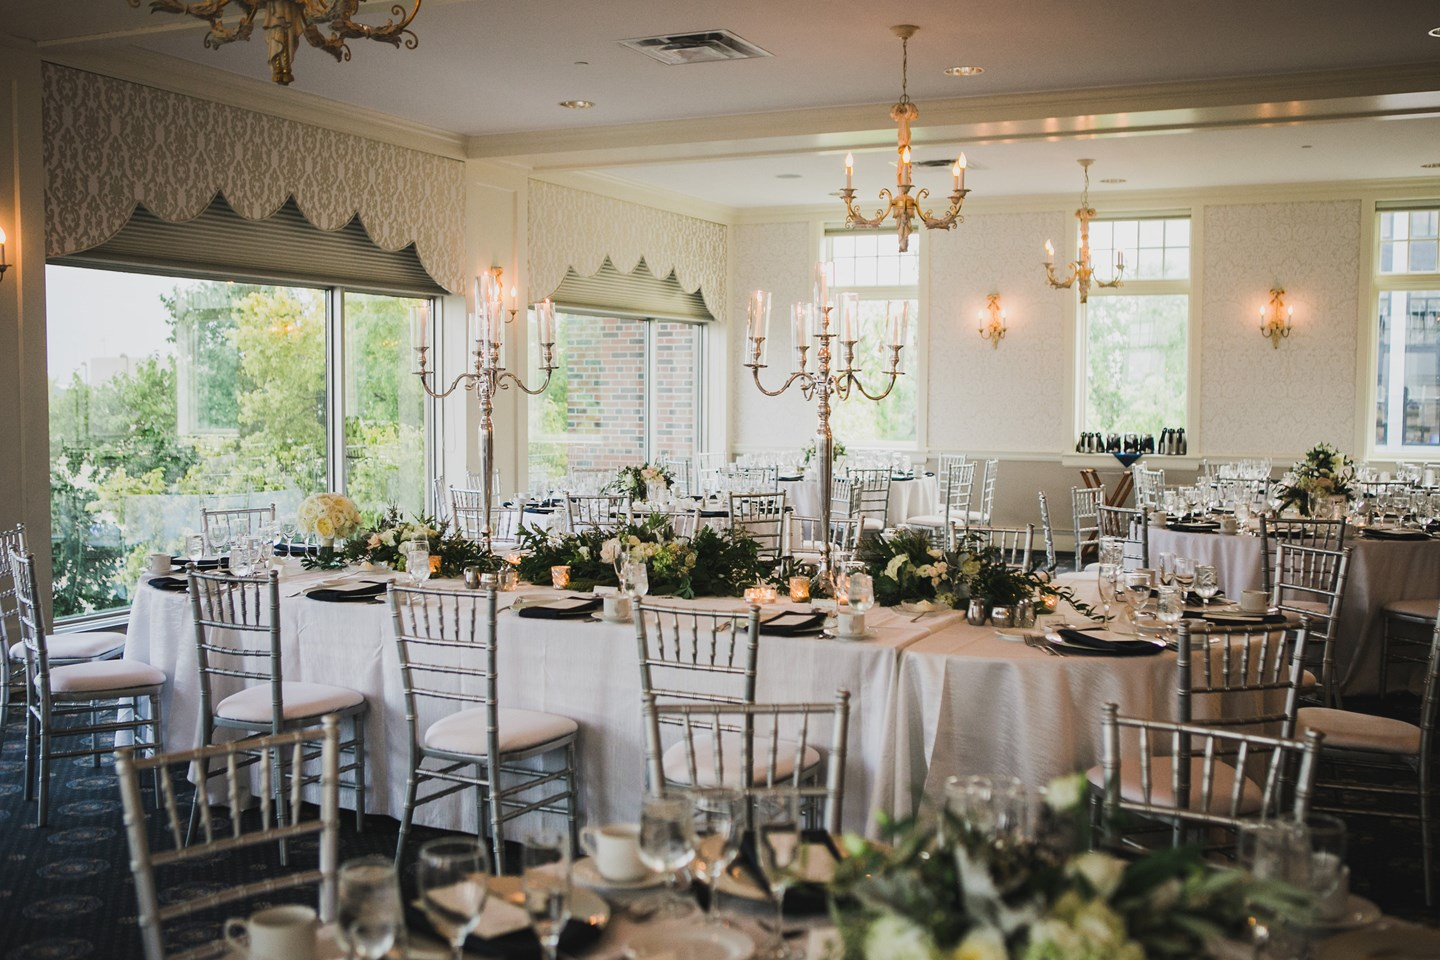 Madison Club (Upper Level) - The Madison Club upper level is PERFECT for weddings because it has even lighting all around with gorgeous windows!!The room itself is so incredible and classy. Top pick for sure!(Image NOT mine, credit unknown)